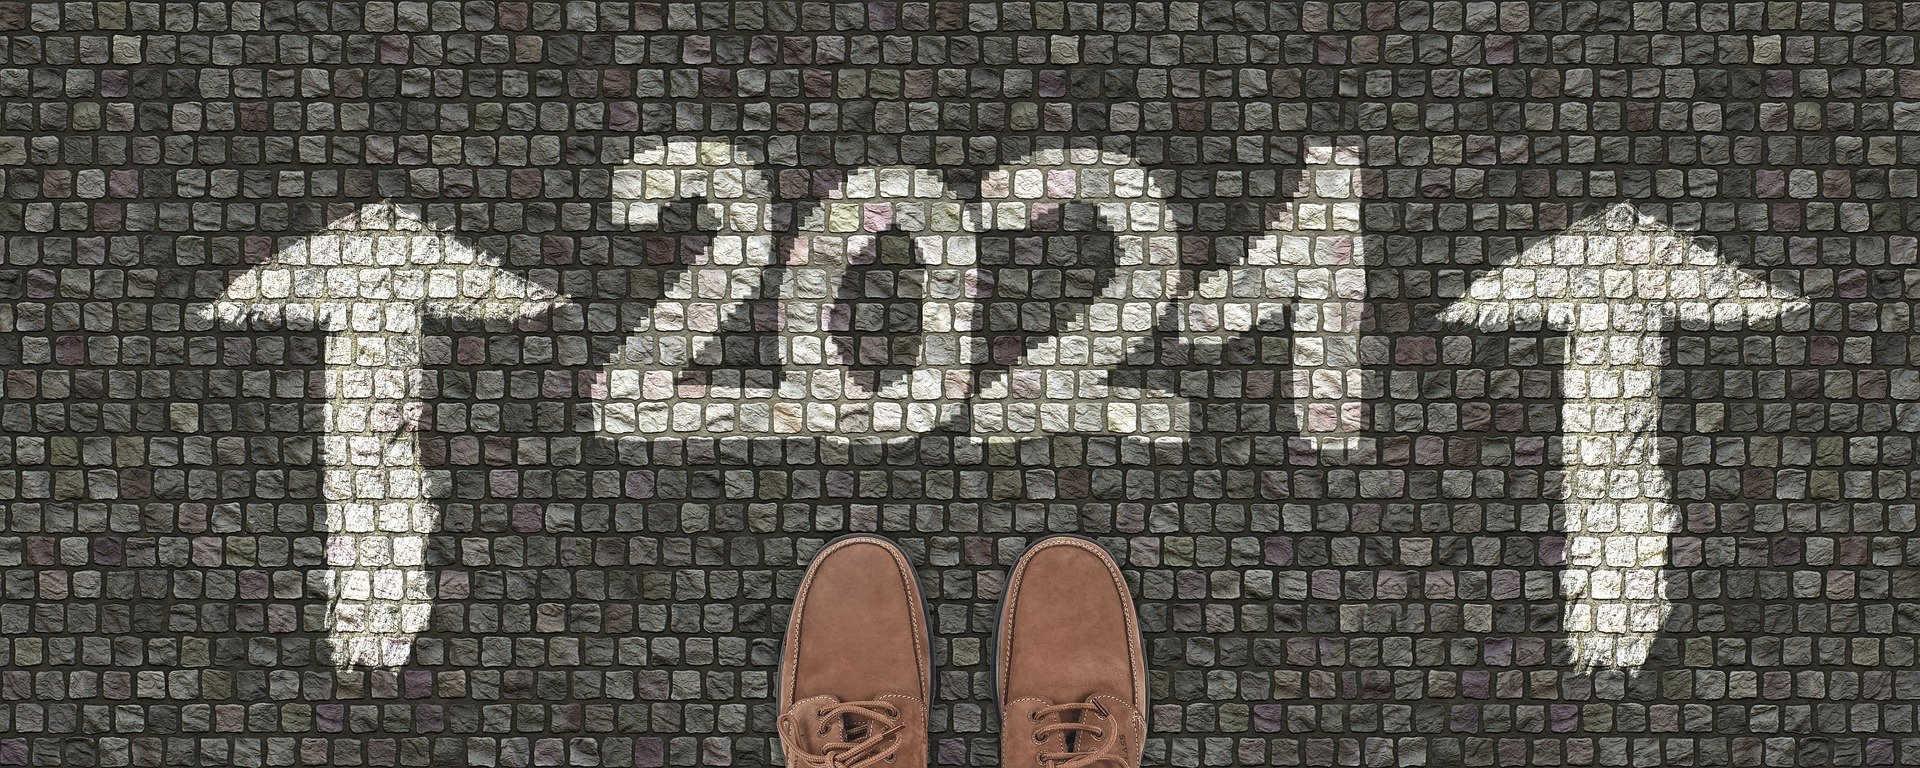 Update your recruitment marketing strategies for 2021 | BlueSky PR